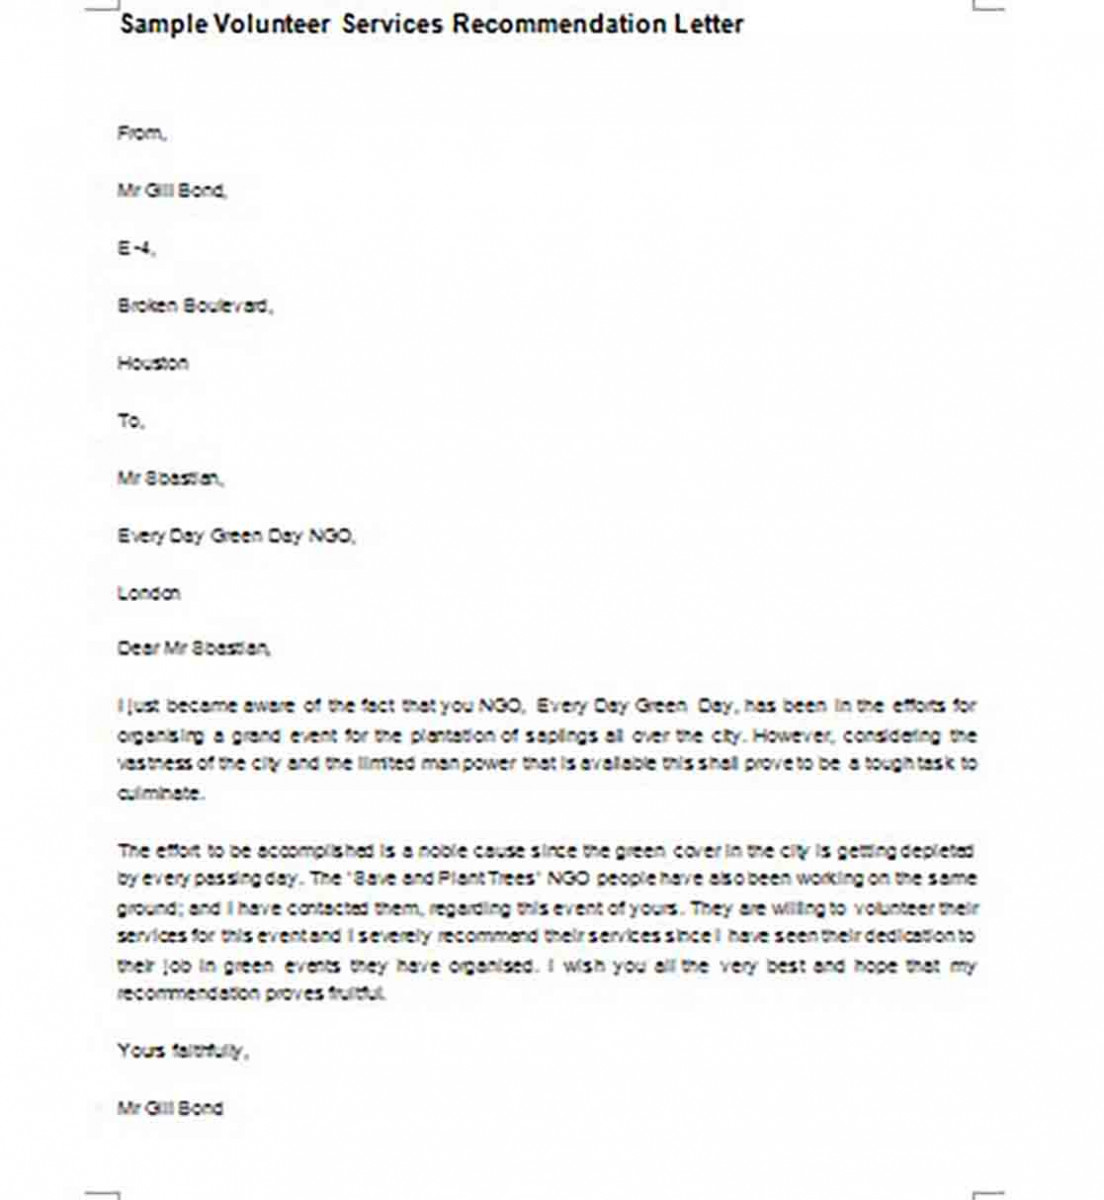 Volunteer Services Recommendation Letter templates